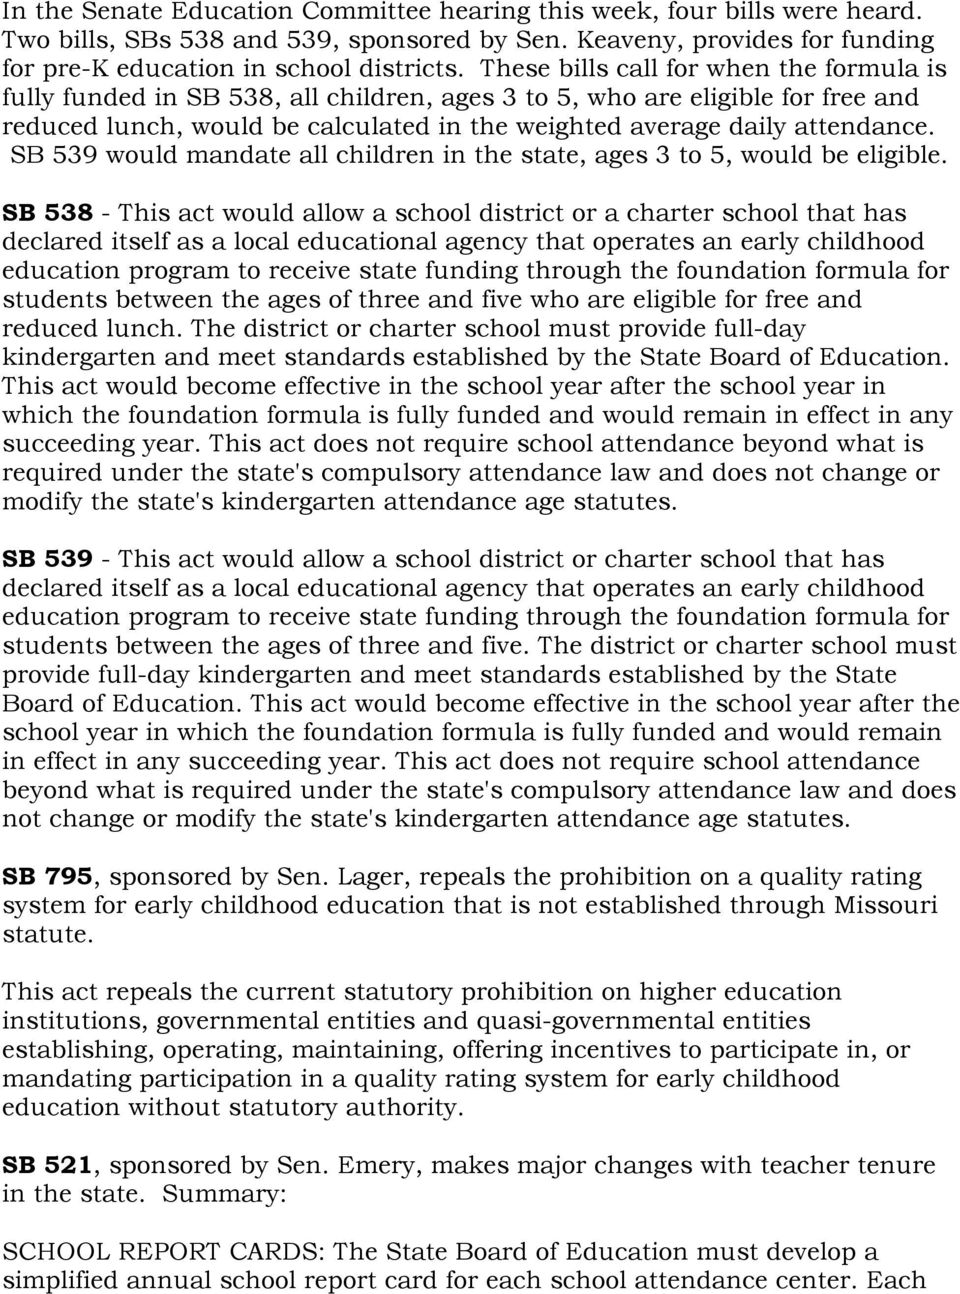 SB 539 would mandate all children in the state, ages 3 to 5, would be eligible.